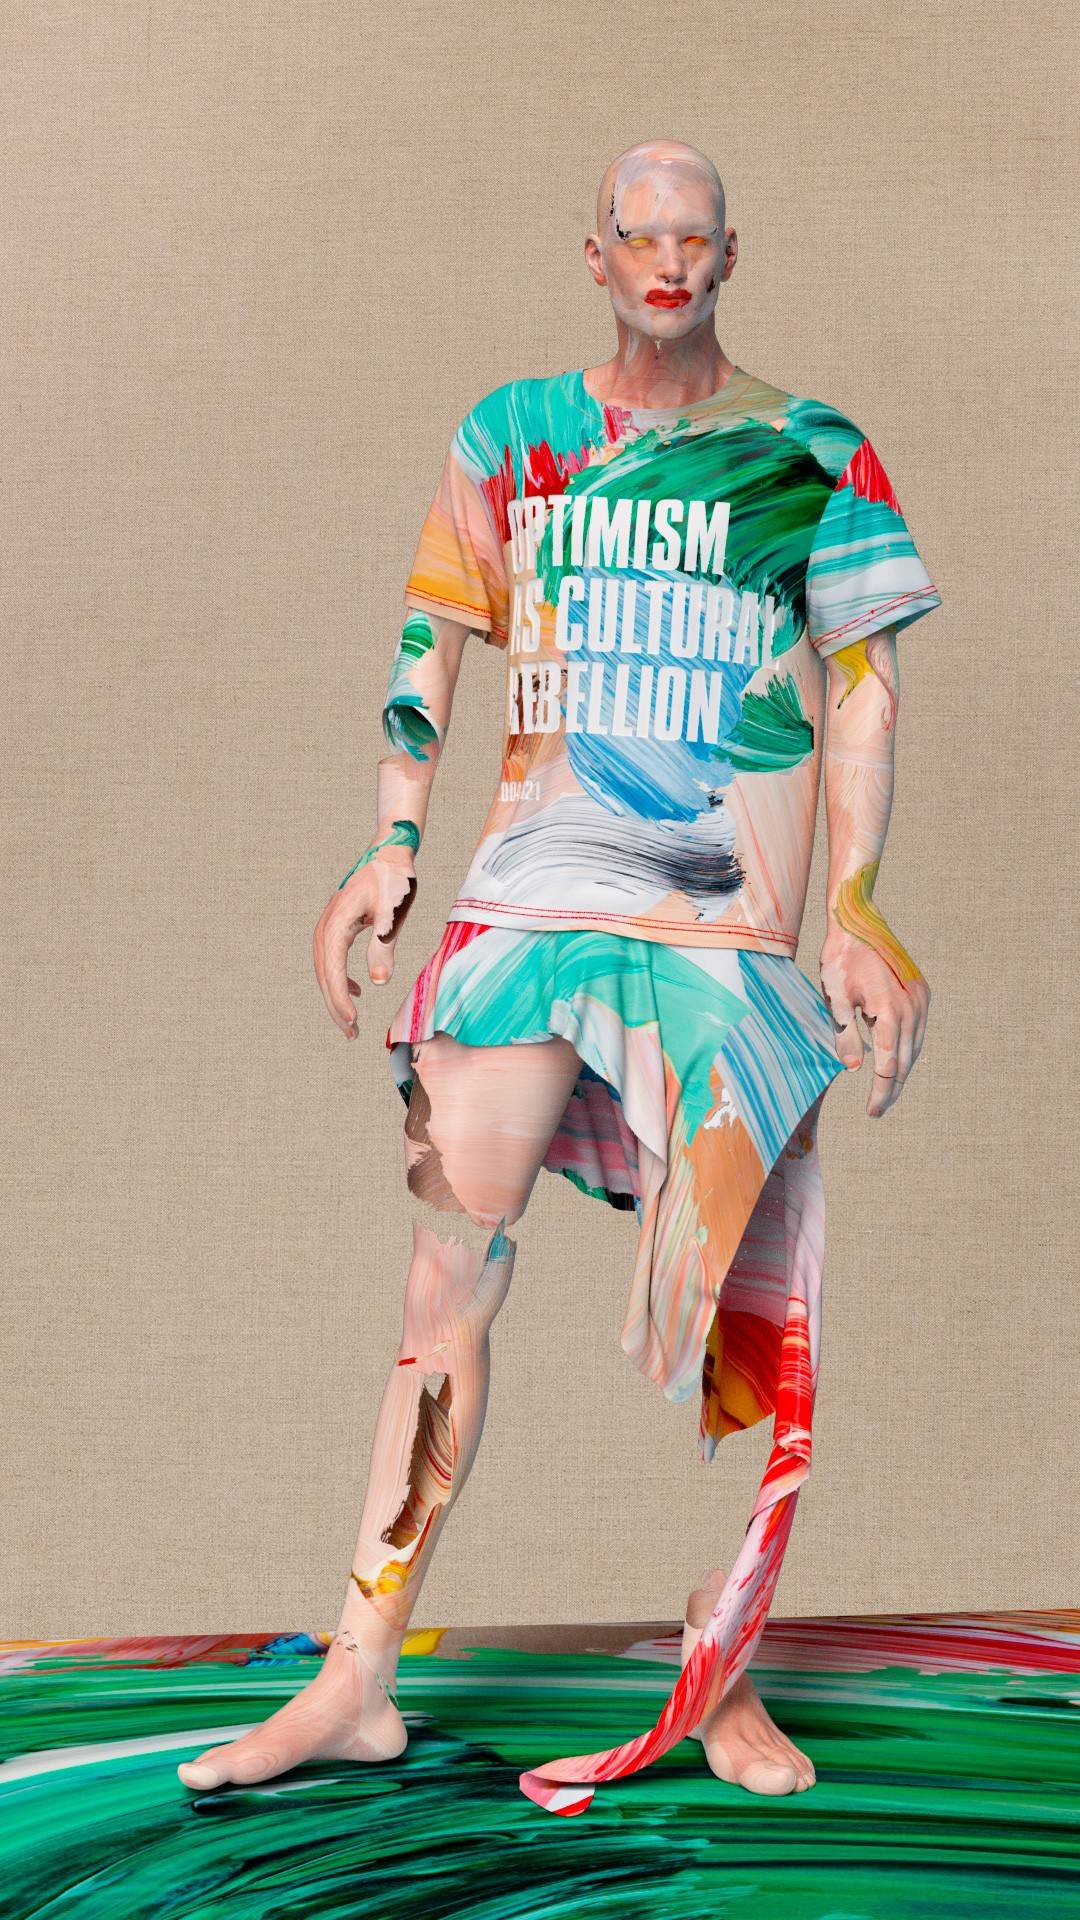 Image: Optimism as Cultural Rebellion 2004-2021 T-Shirt & Skirt by Matthew Stone